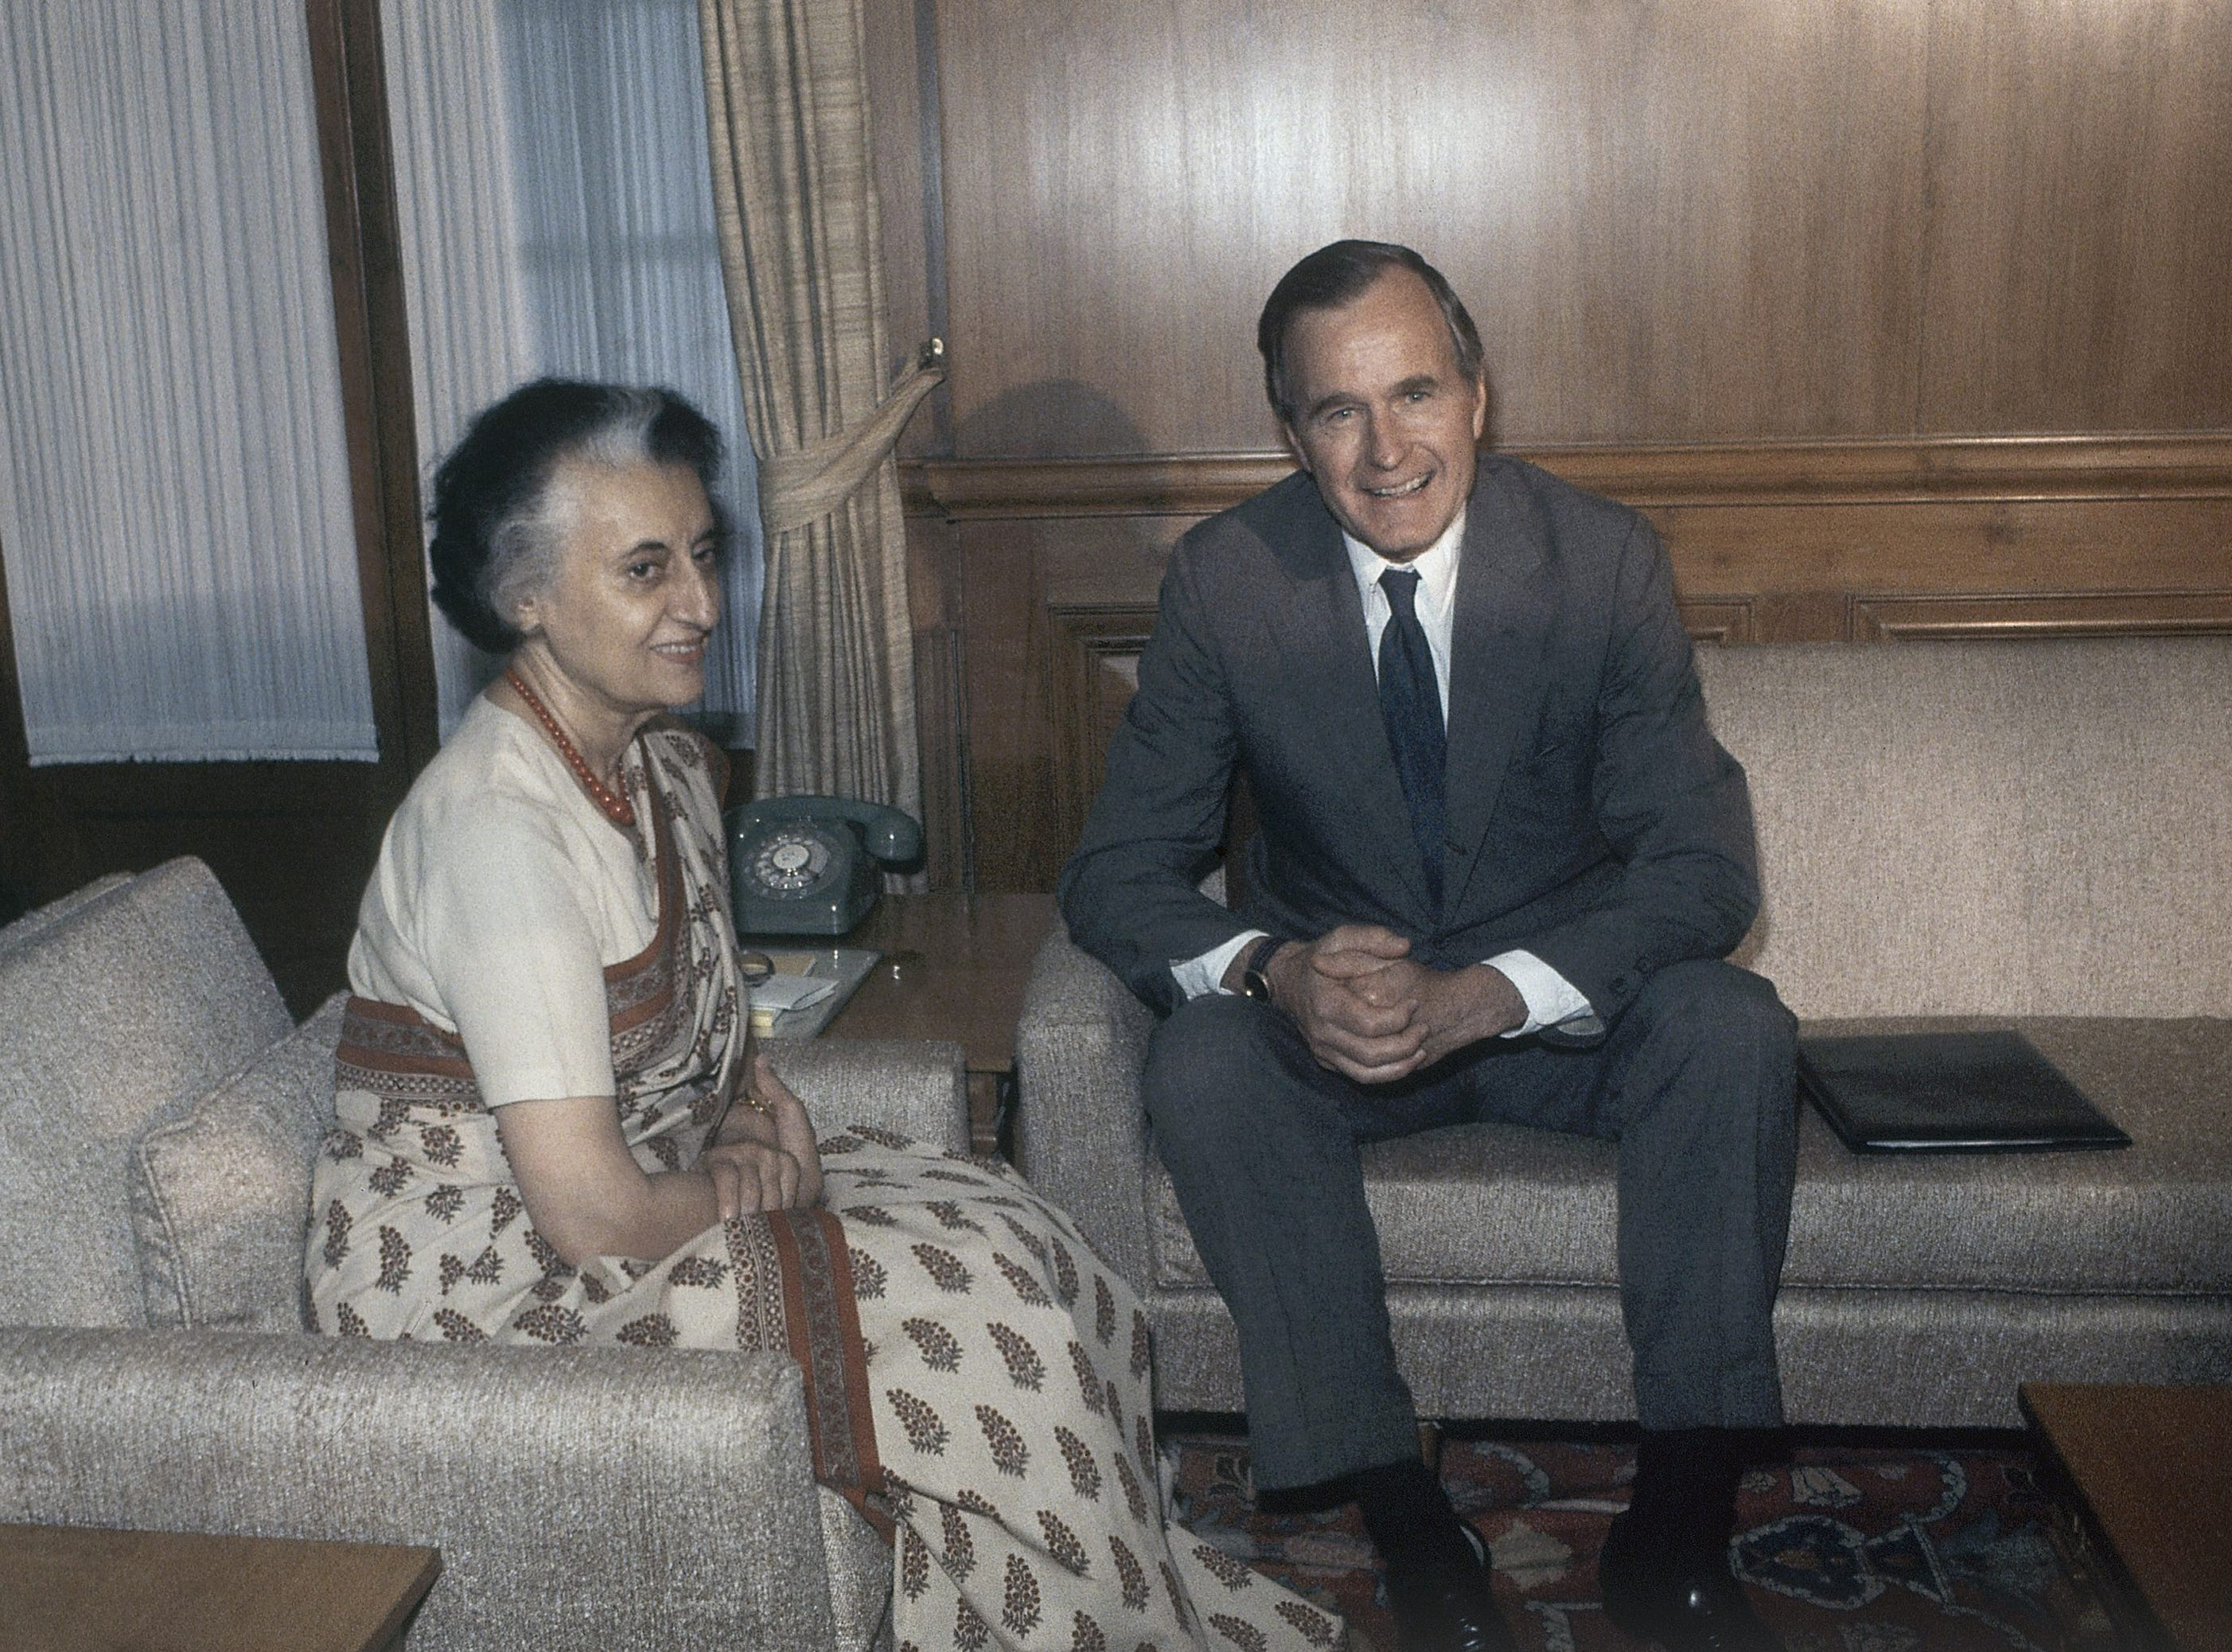 U.S. Vice President George H. W. Bush, right, and Prime Minister Indira Gandhi are shown discussing the international situation and bilateral affairs, Monday, May 14, 1984, New Delhi, India. (AP Photo/Sondeep Shankar)